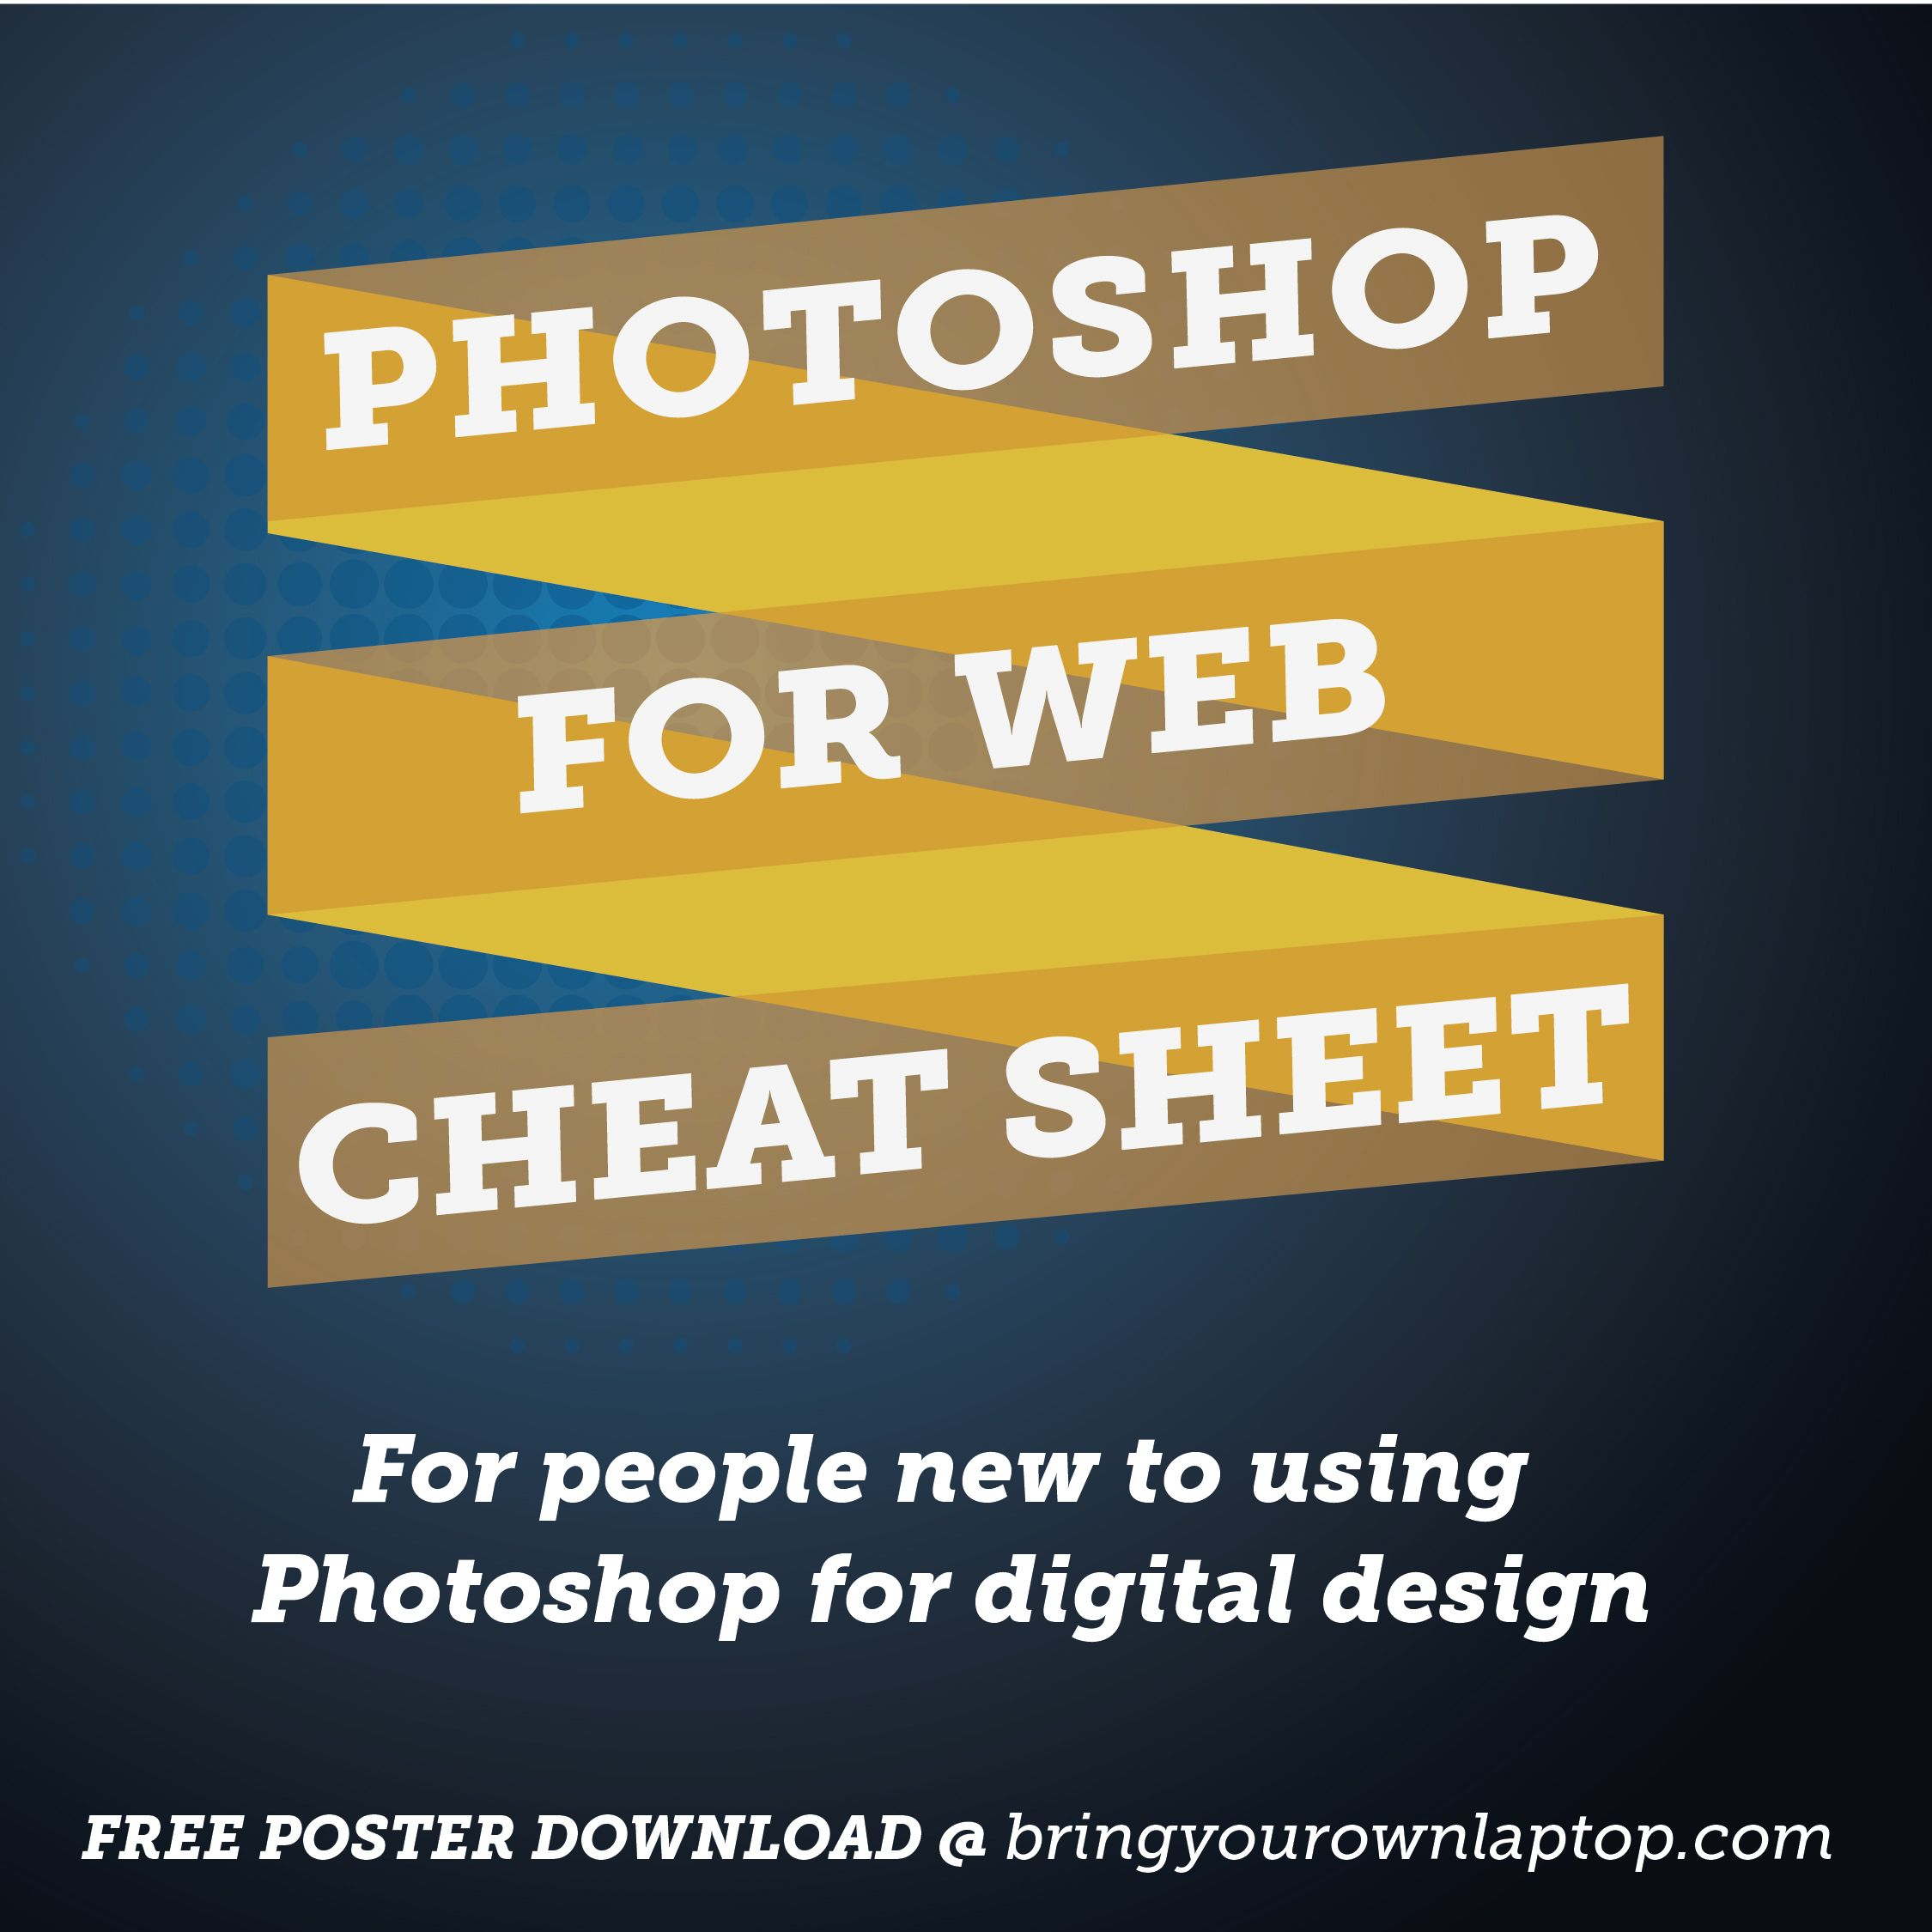 Free online training for people new to using photoshop for digital free online training for people new to using photoshop for digital design baditri Gallery